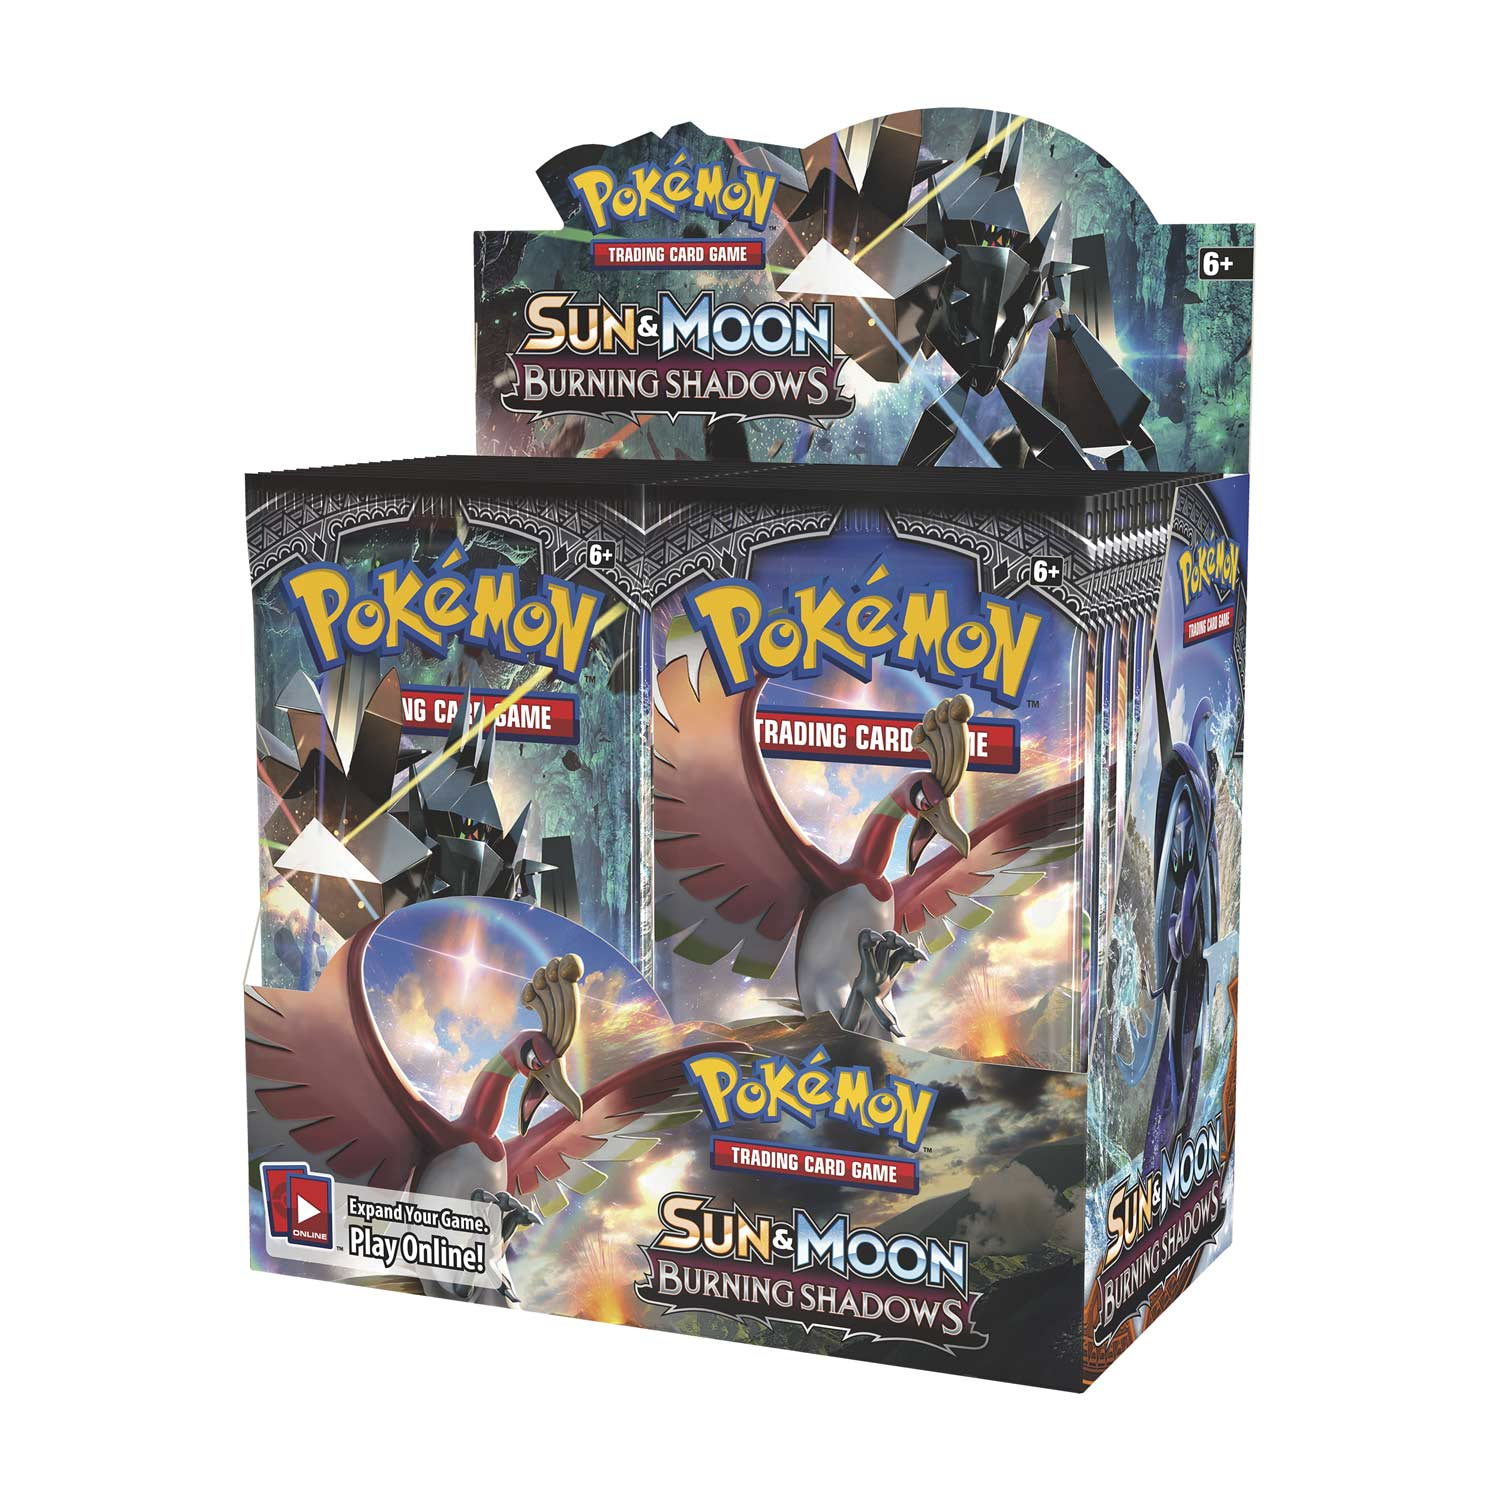 Pokemon Sun & Moon SM3 Burning Shadows Booster Box